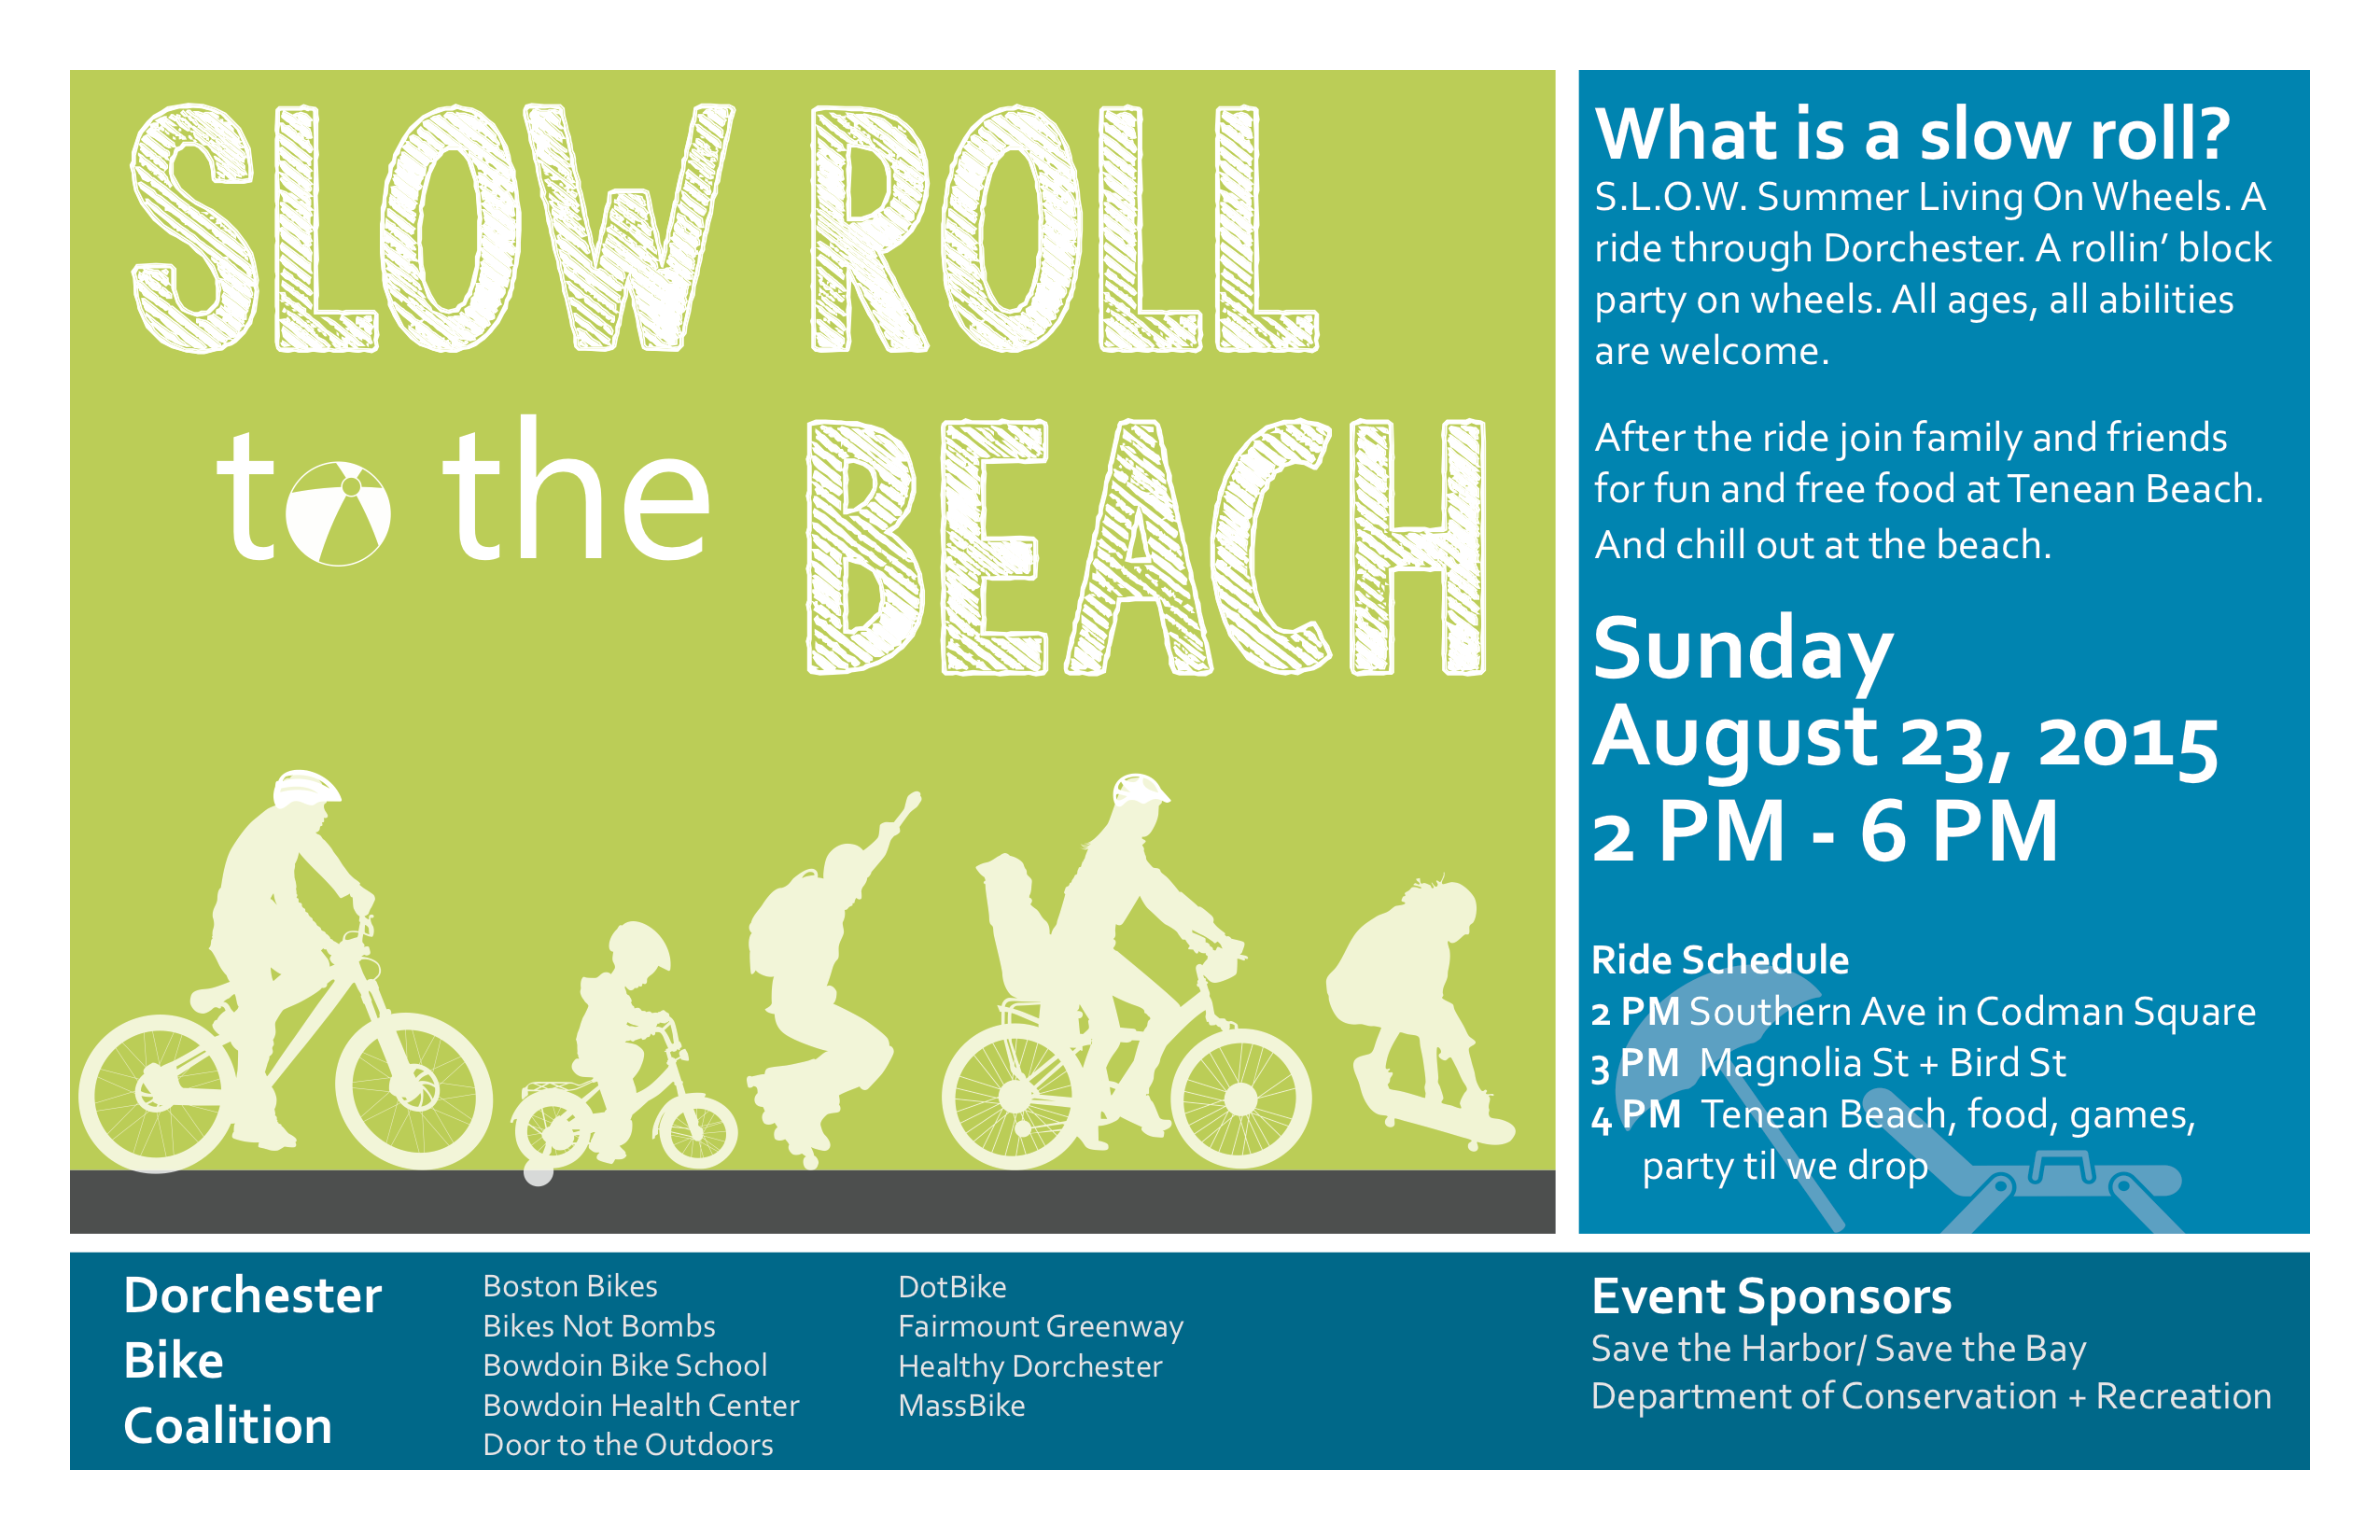 Slow_Roll_to_the_Beach__11x17_8.10.2015_english_copy_v2.png